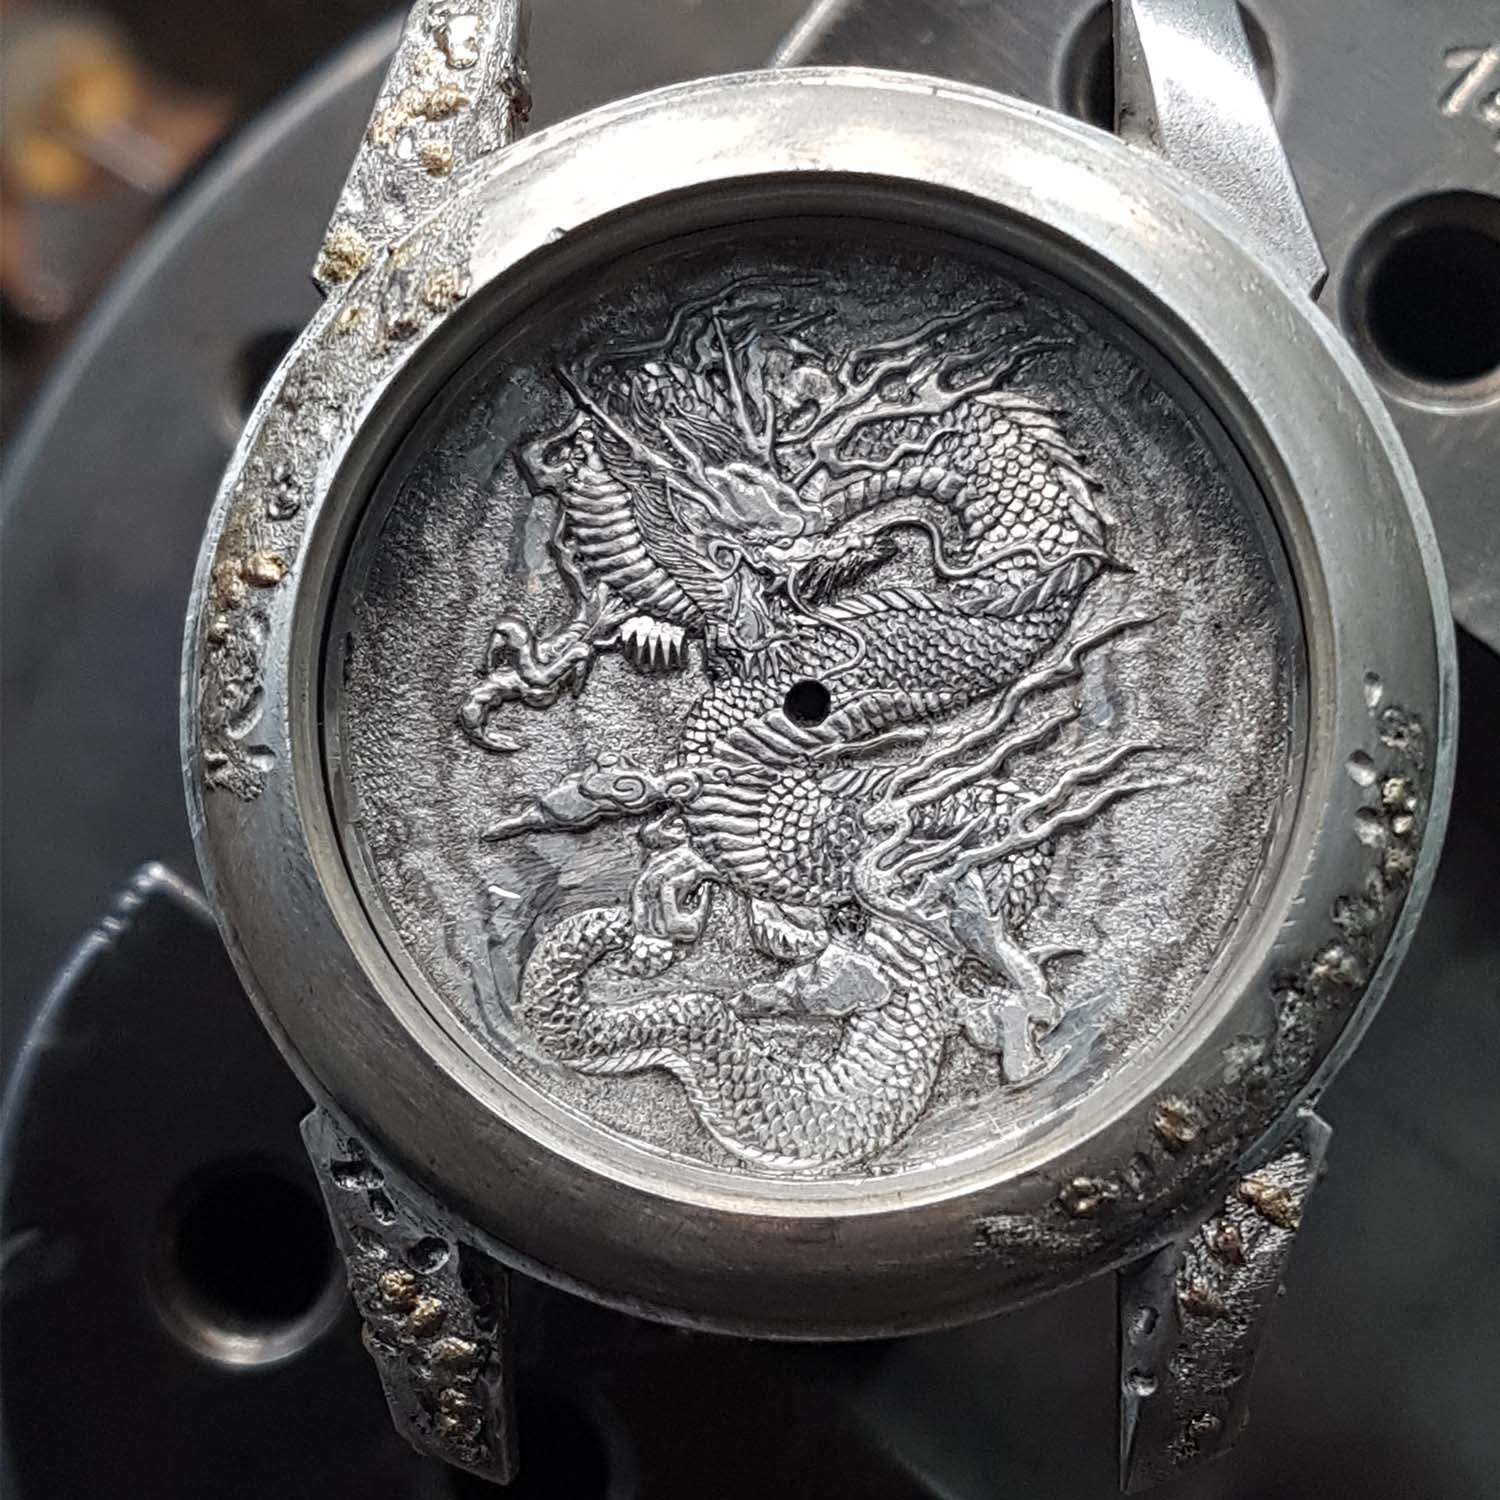 Hand-Engraved Kees Engelbarts Organic Skeleton Ref 1867 - making of - 11